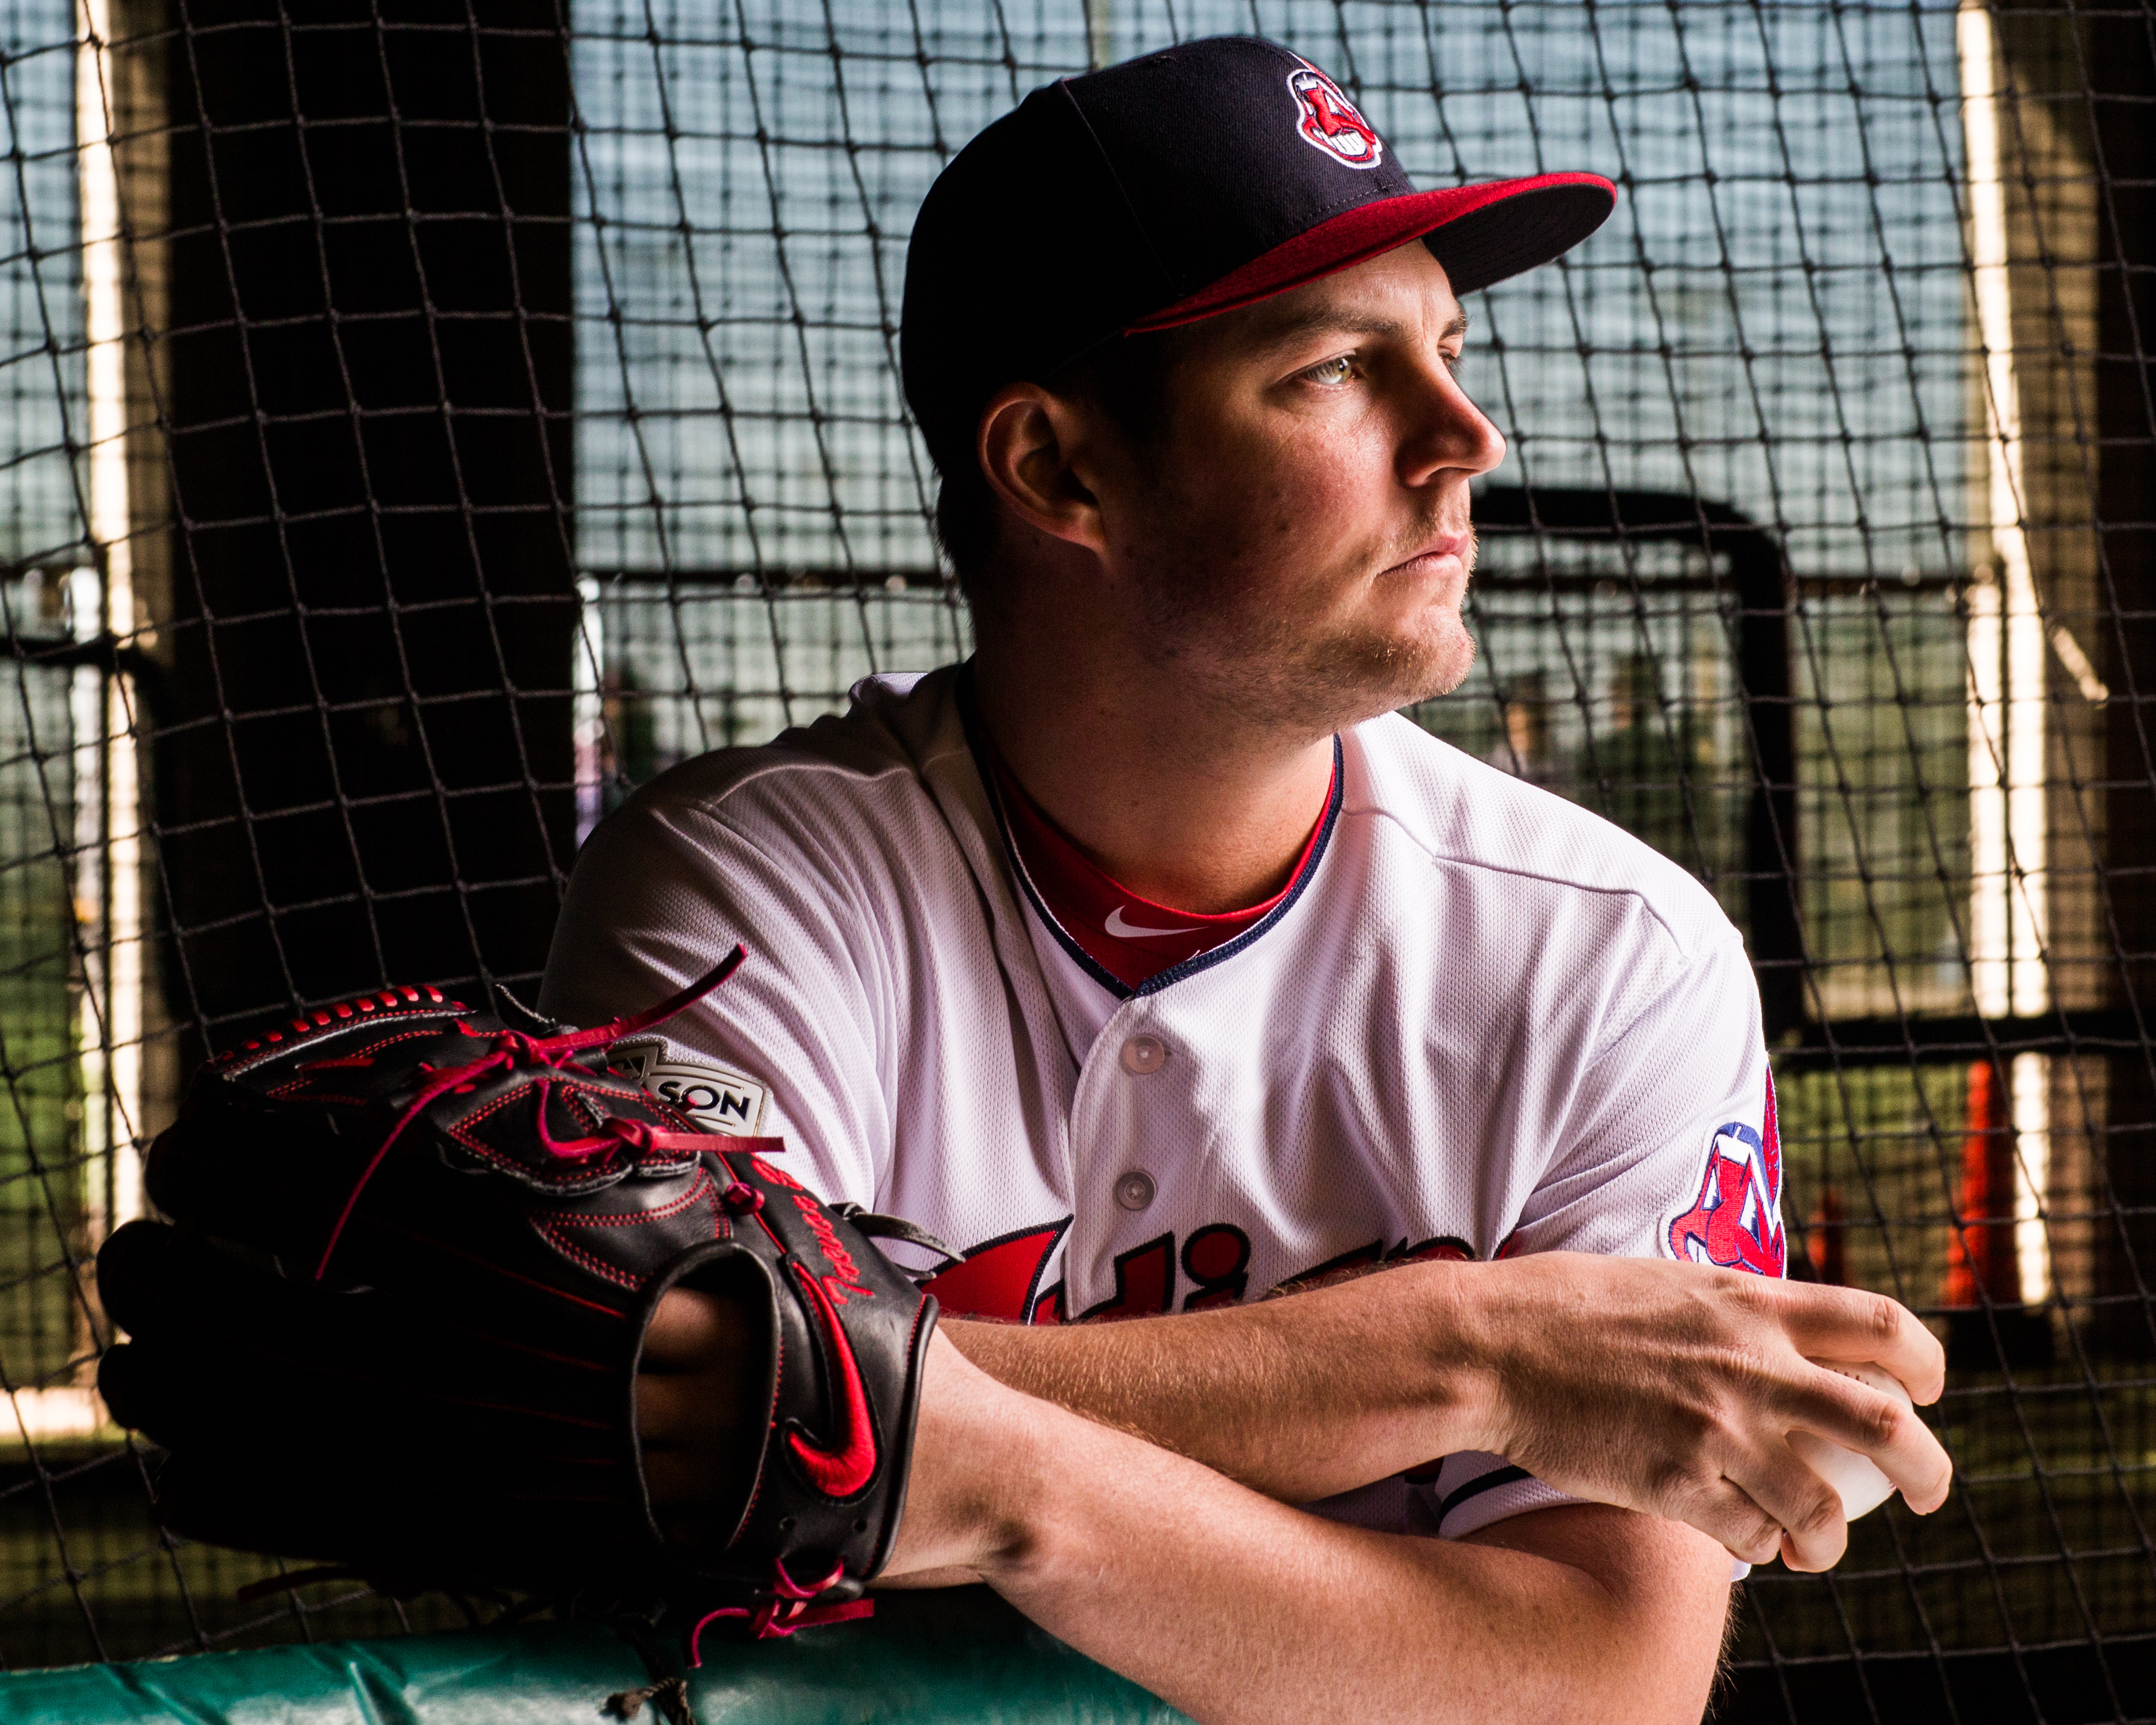 Bauer is a divisive figure both on and off the field